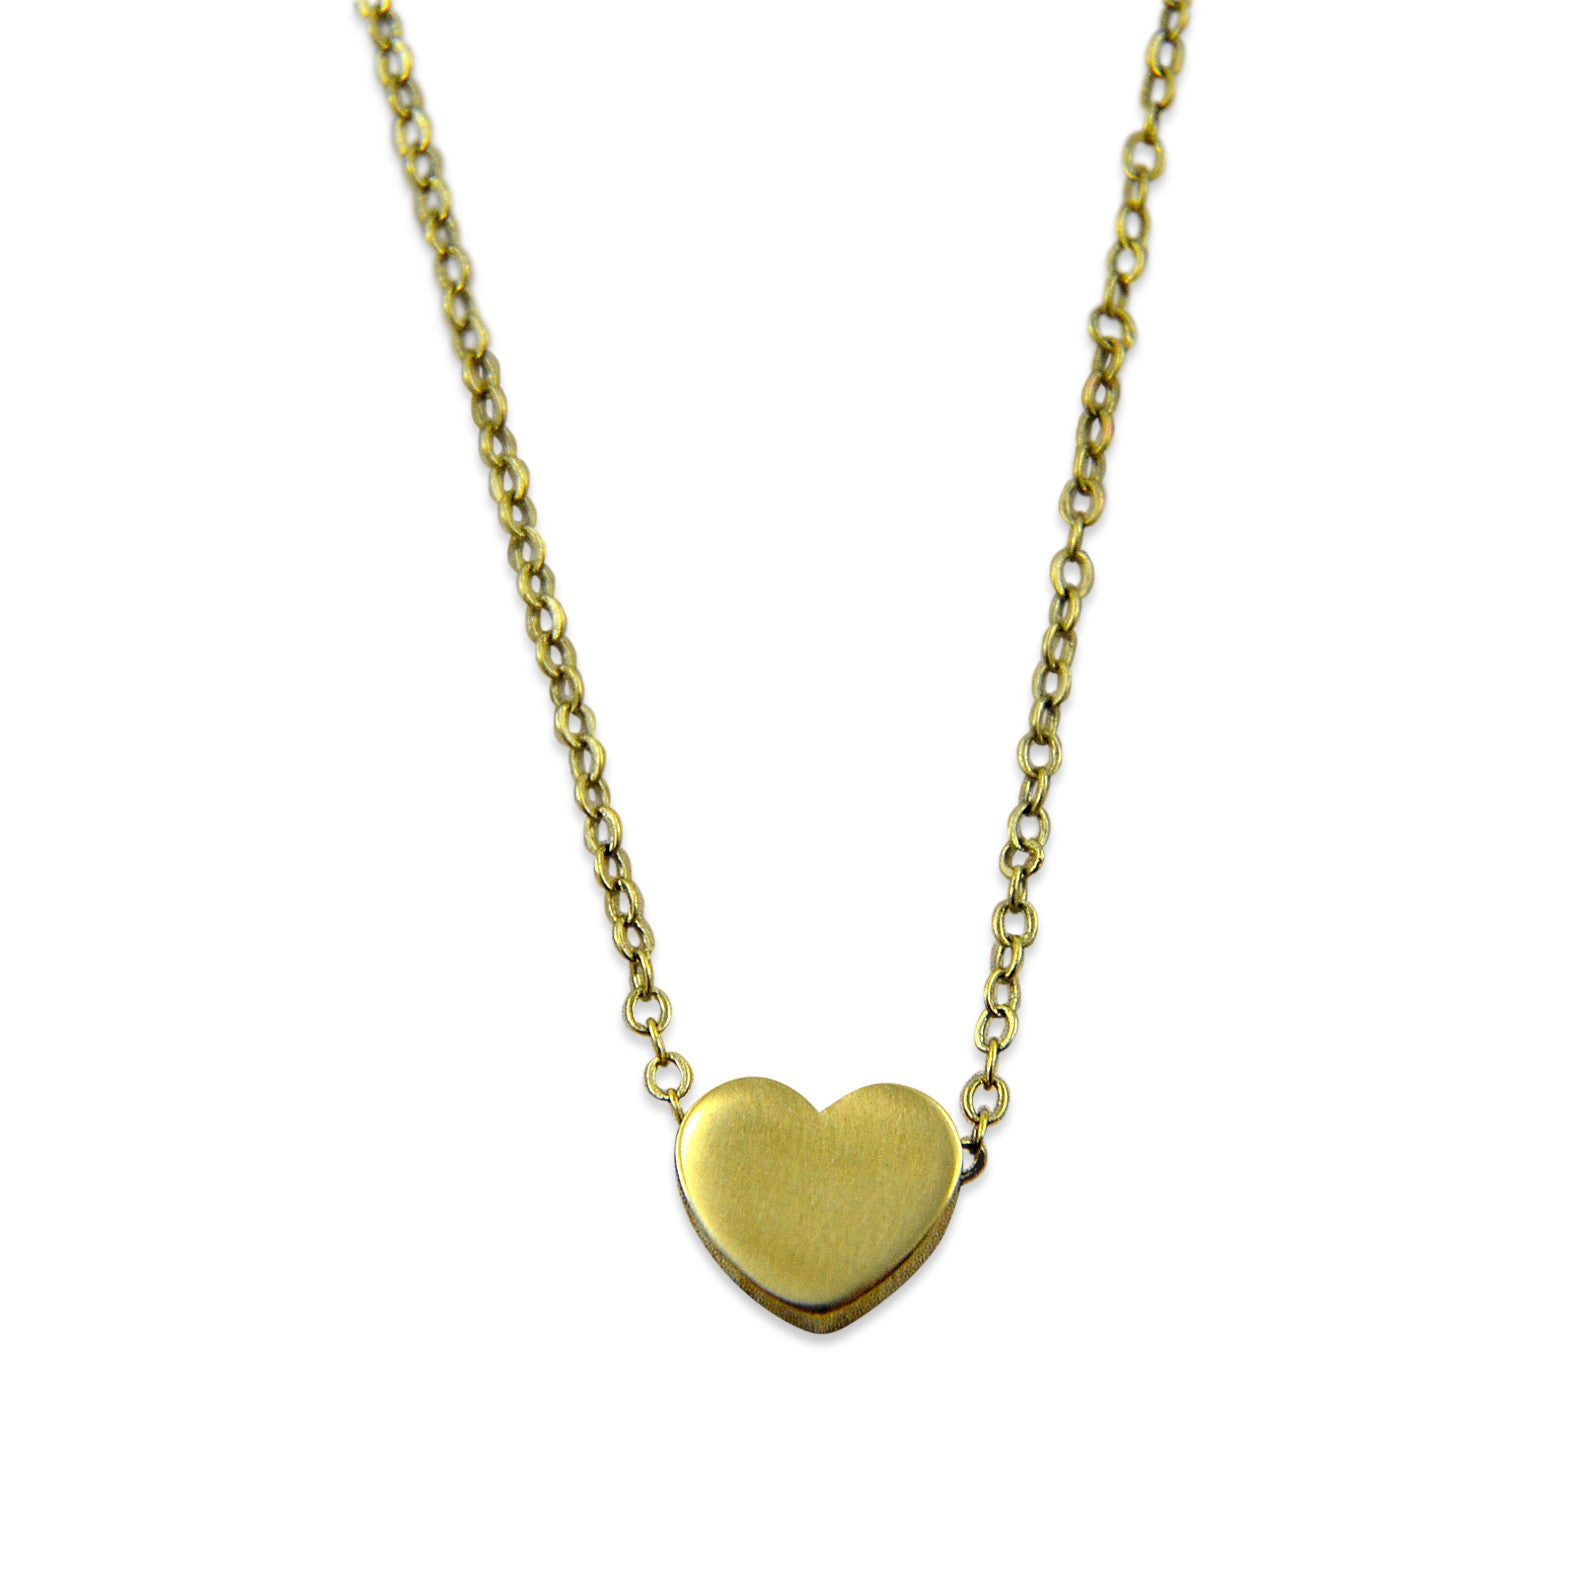 Tiny Heart Necklace - Gwen Delicious Jewelry Designs